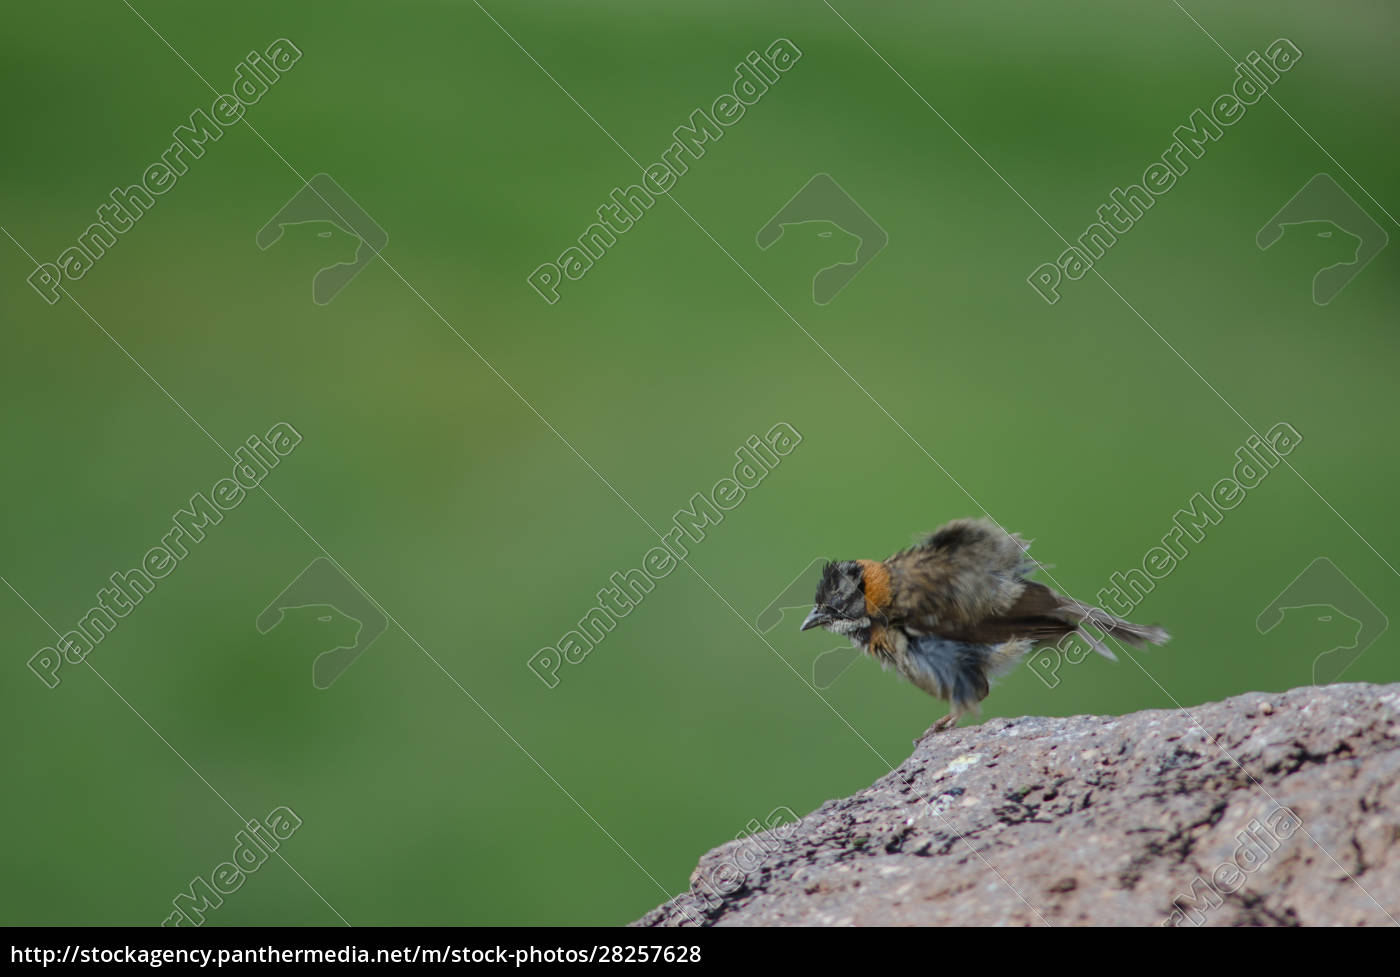 rufous-collared, sparrow, zonotrichia, capensis, shaking, its - 28257628